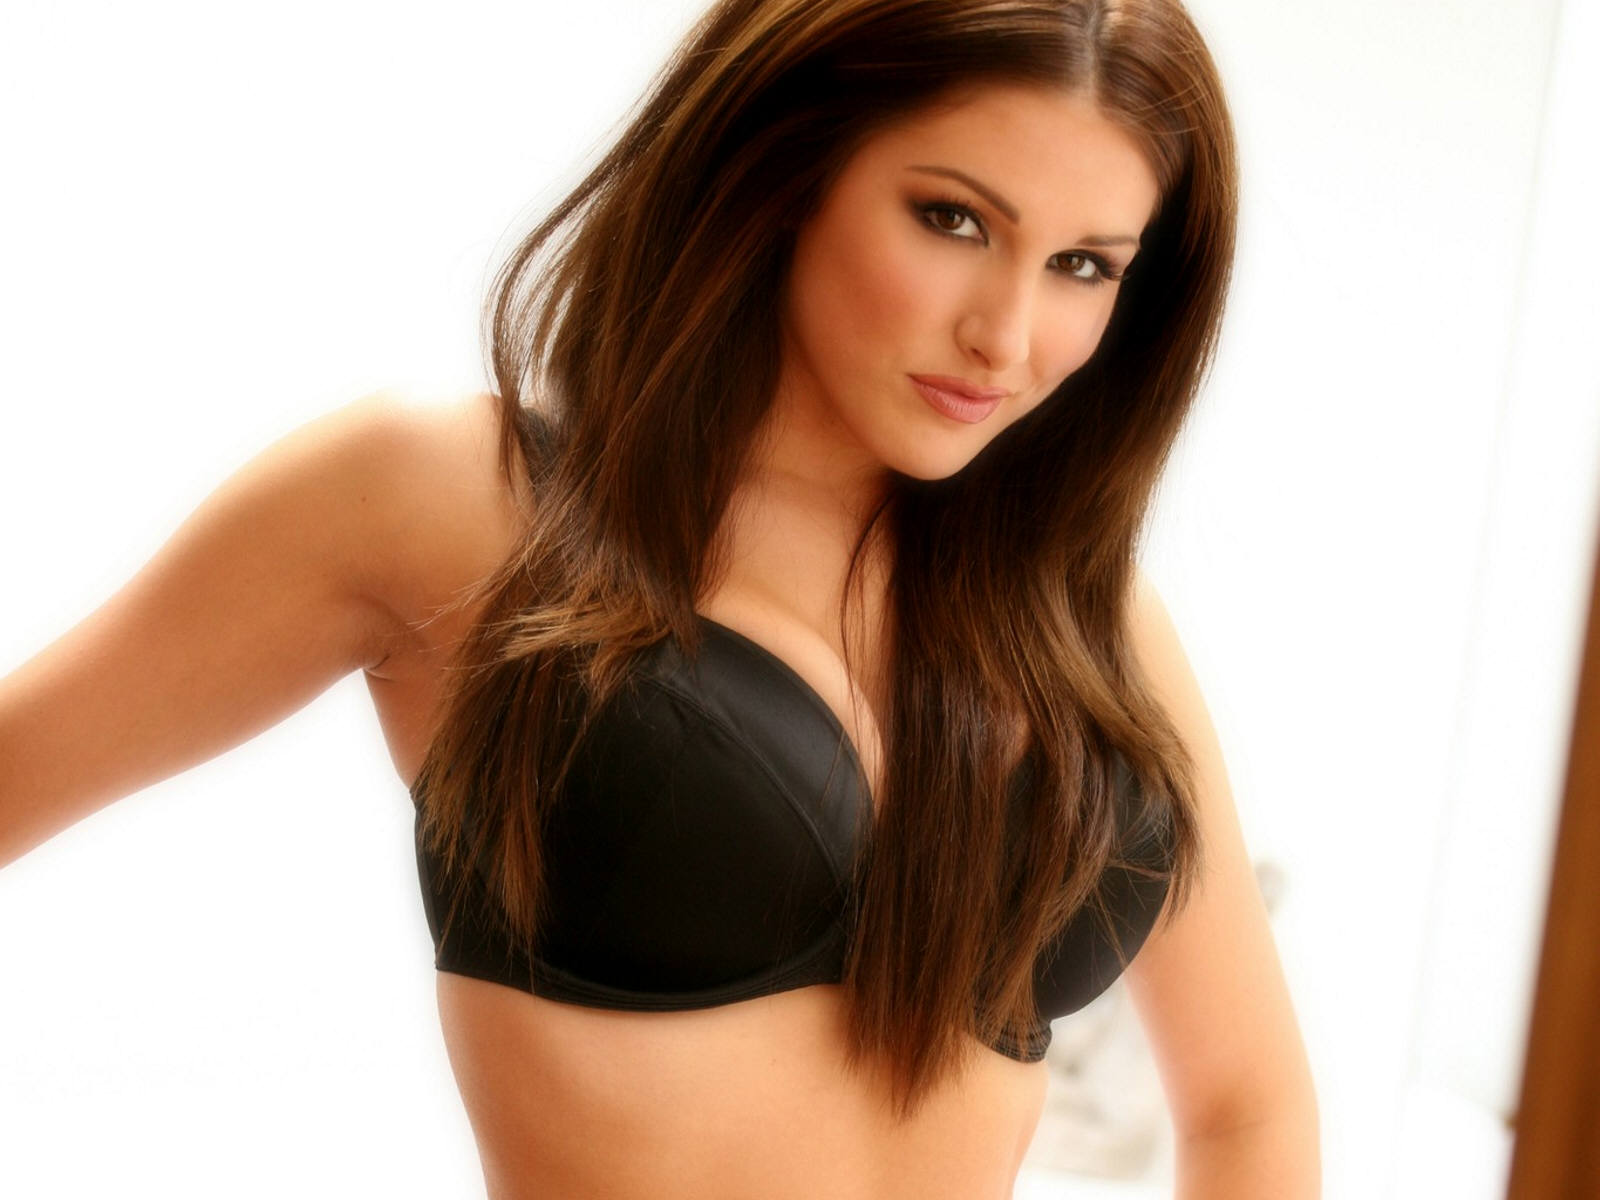 lucy pinder sexy nude topless big boobs big ass nude body lucy pinder boobs hd wallpapers sexy hot nude beach sexy wallpapers play boy model sexy nude wallpapers high quality wallpapers hot babes 2011 3 Fucking Girls Xxx Hardcore Sex Free Videos